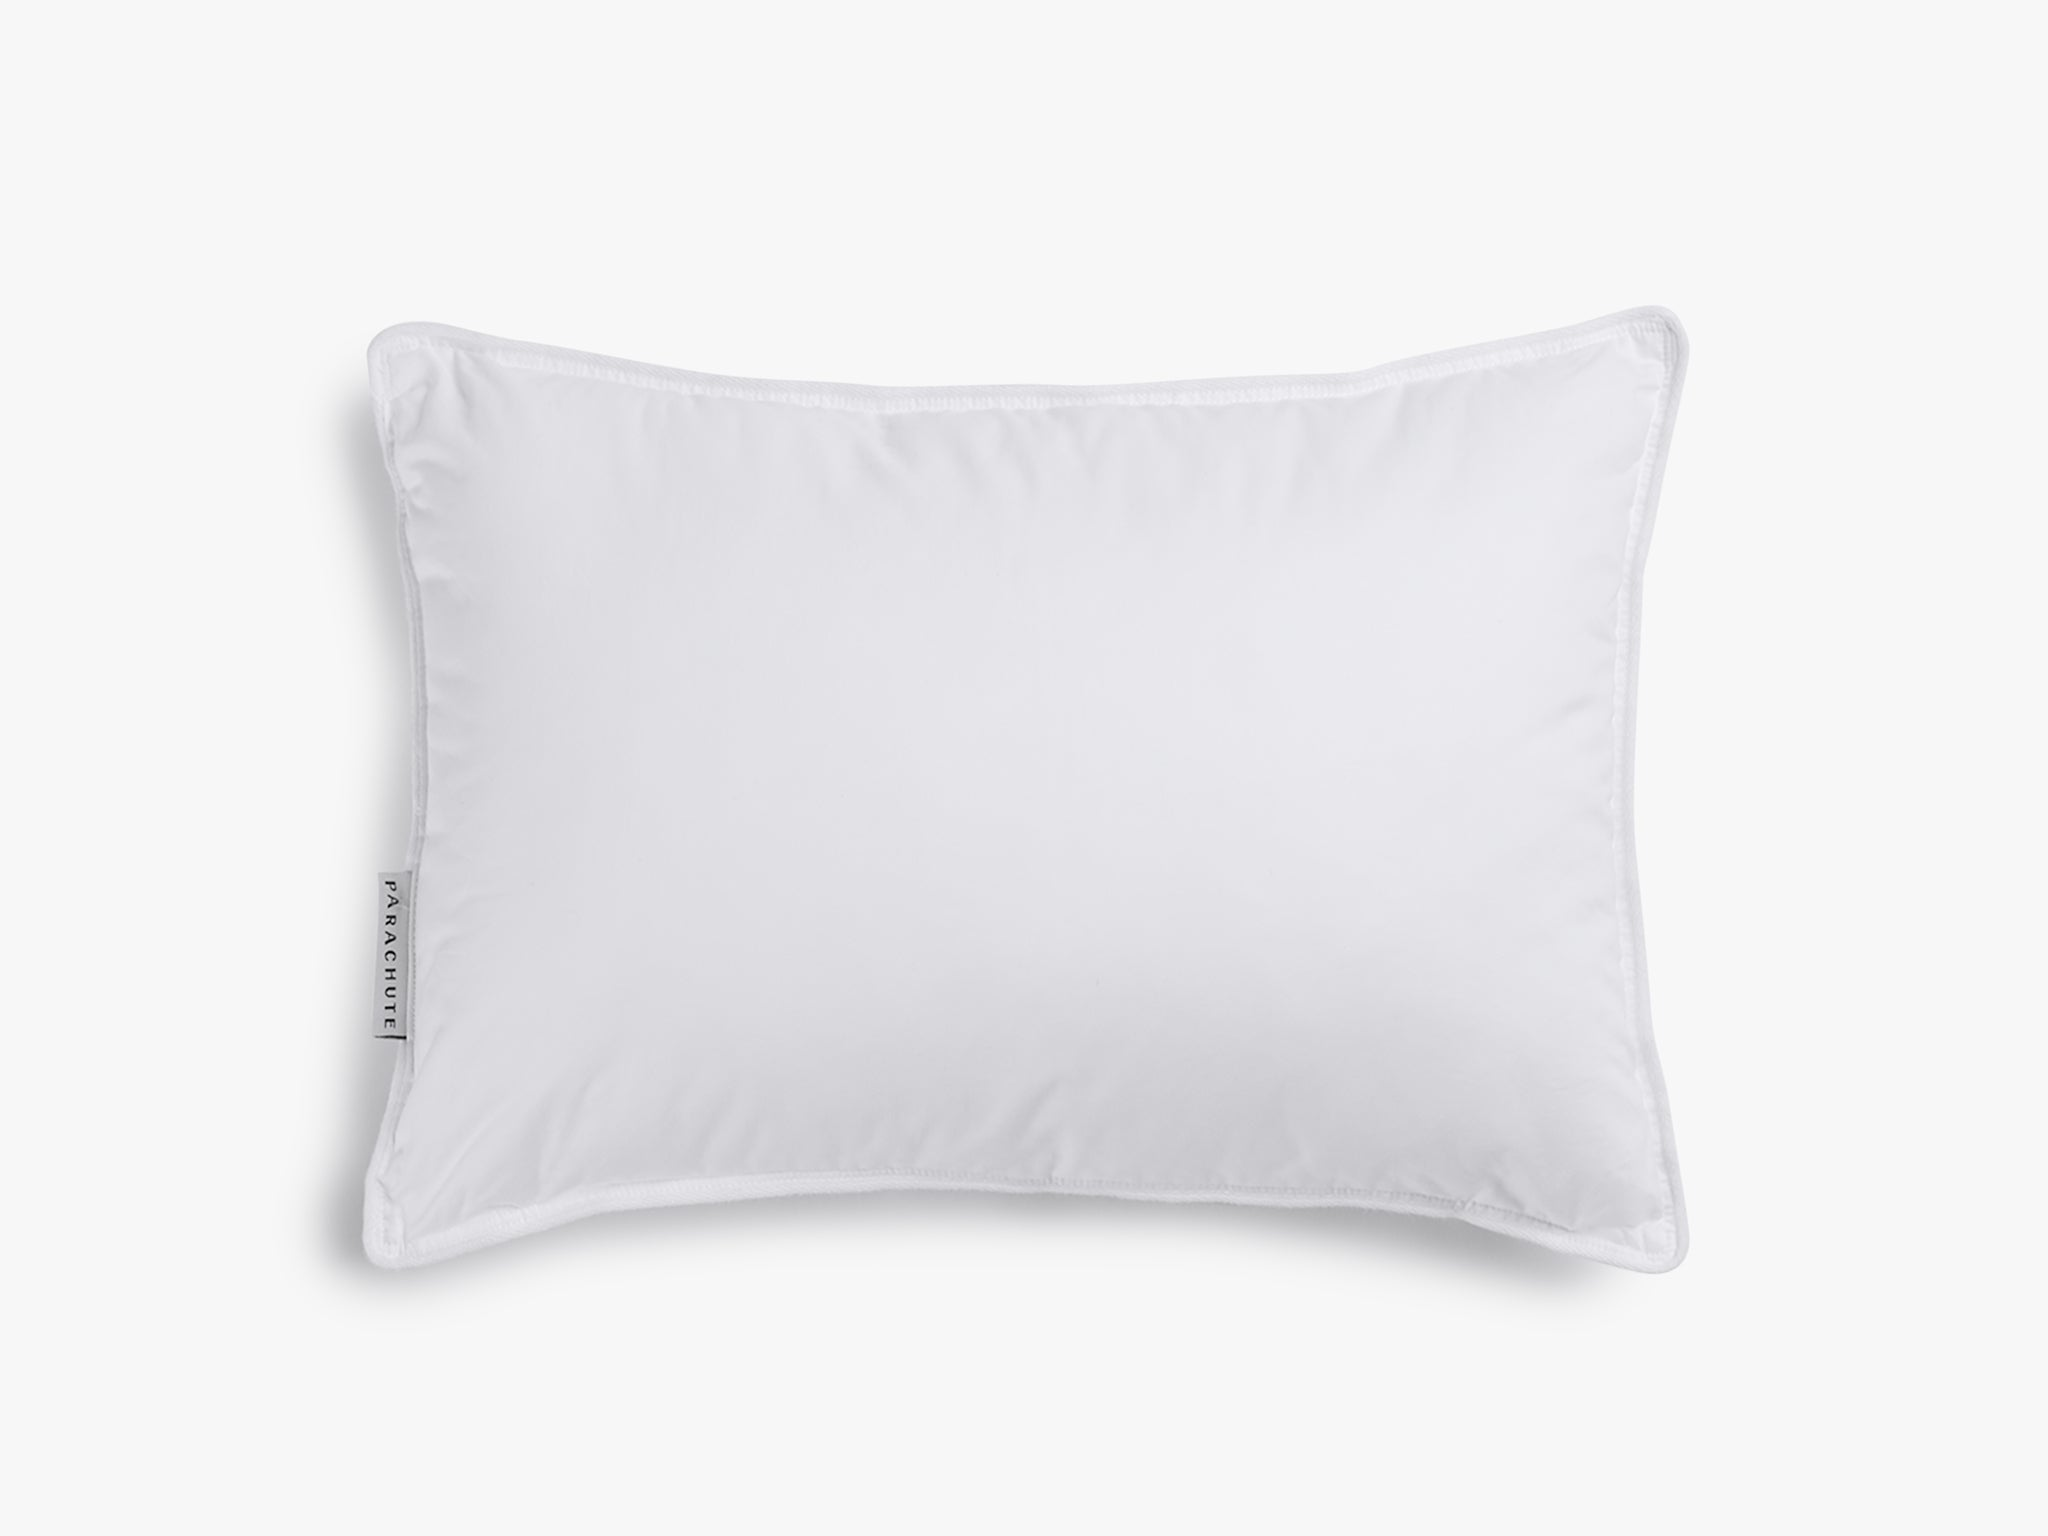 Toddler Pillow Product Image